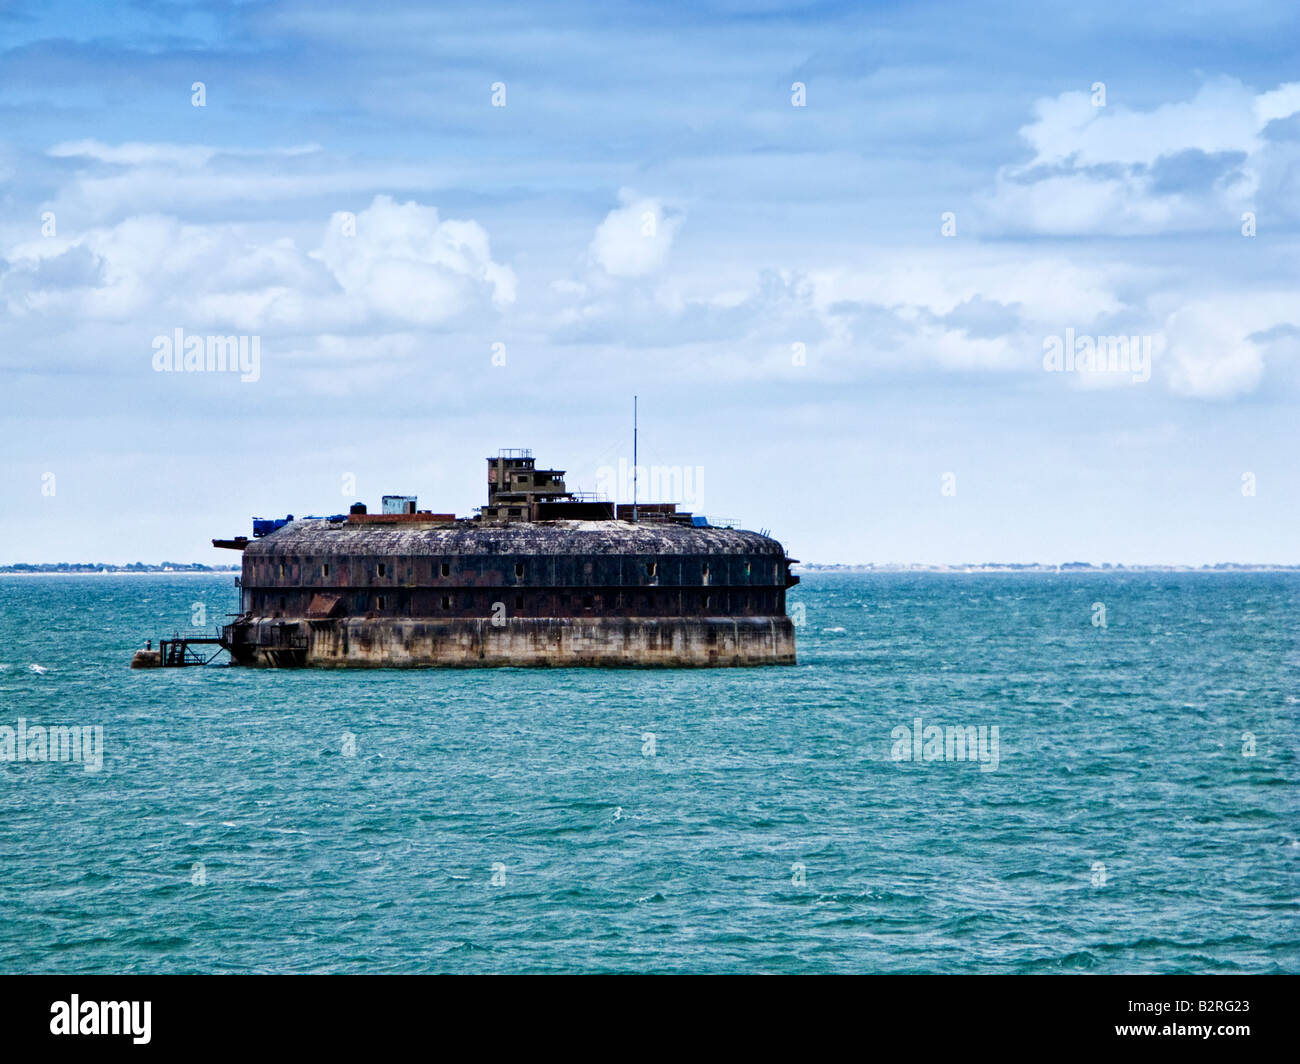 Horse Sand fort in The Solent at the entrance to Portsmouth Harbour, England, UK - Stock Image